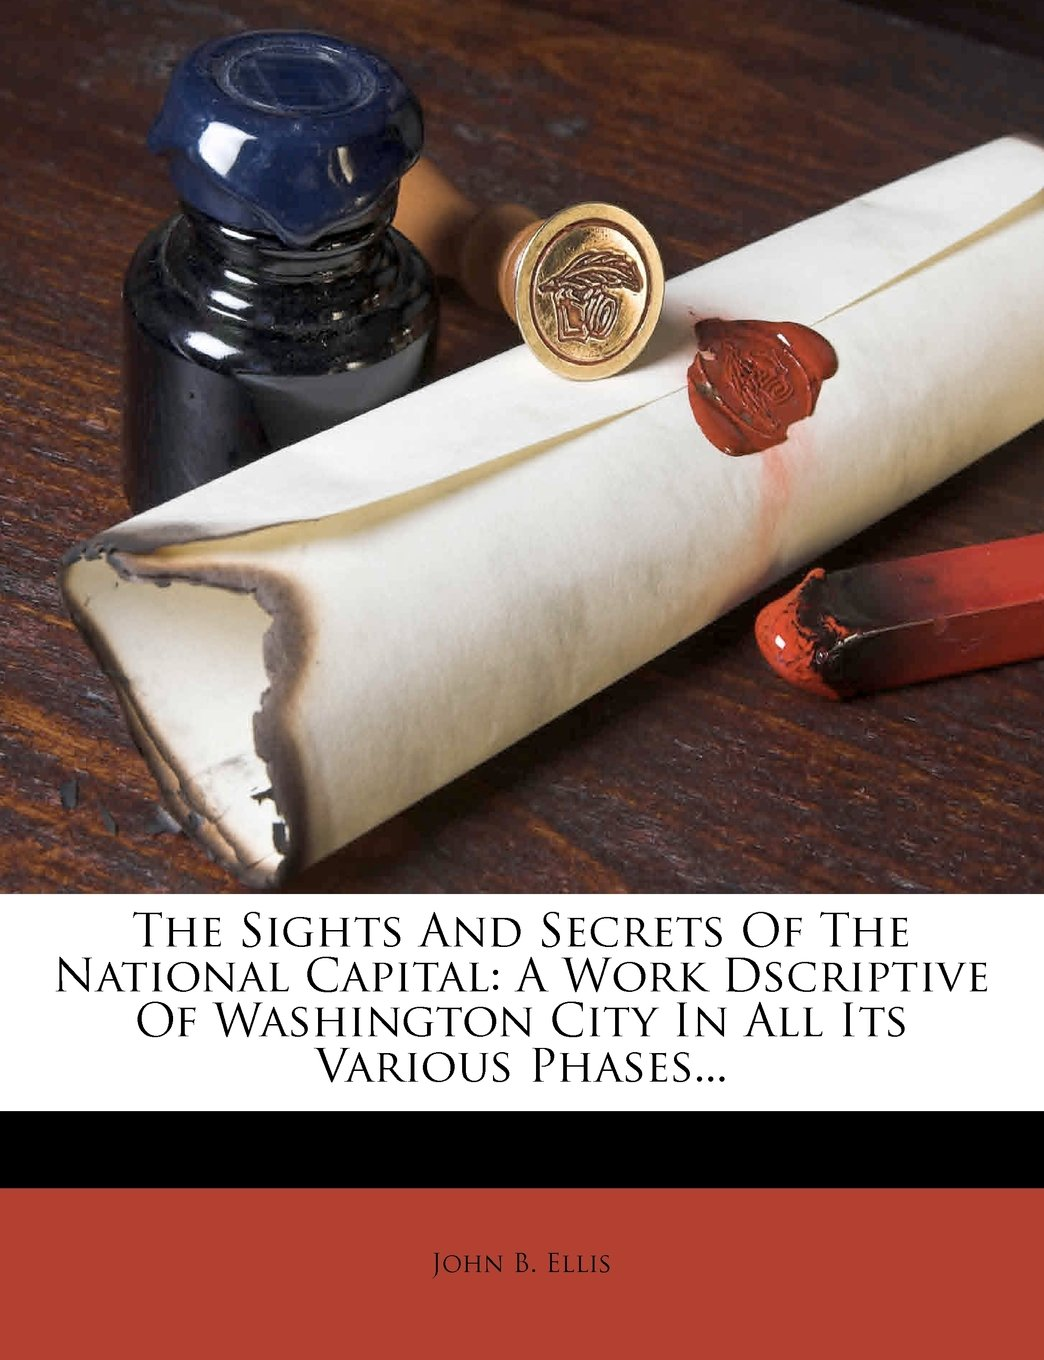 Download The Sights And Secrets Of The National Capital: A Work Dscriptive Of Washington City In All Its Various Phases... pdf